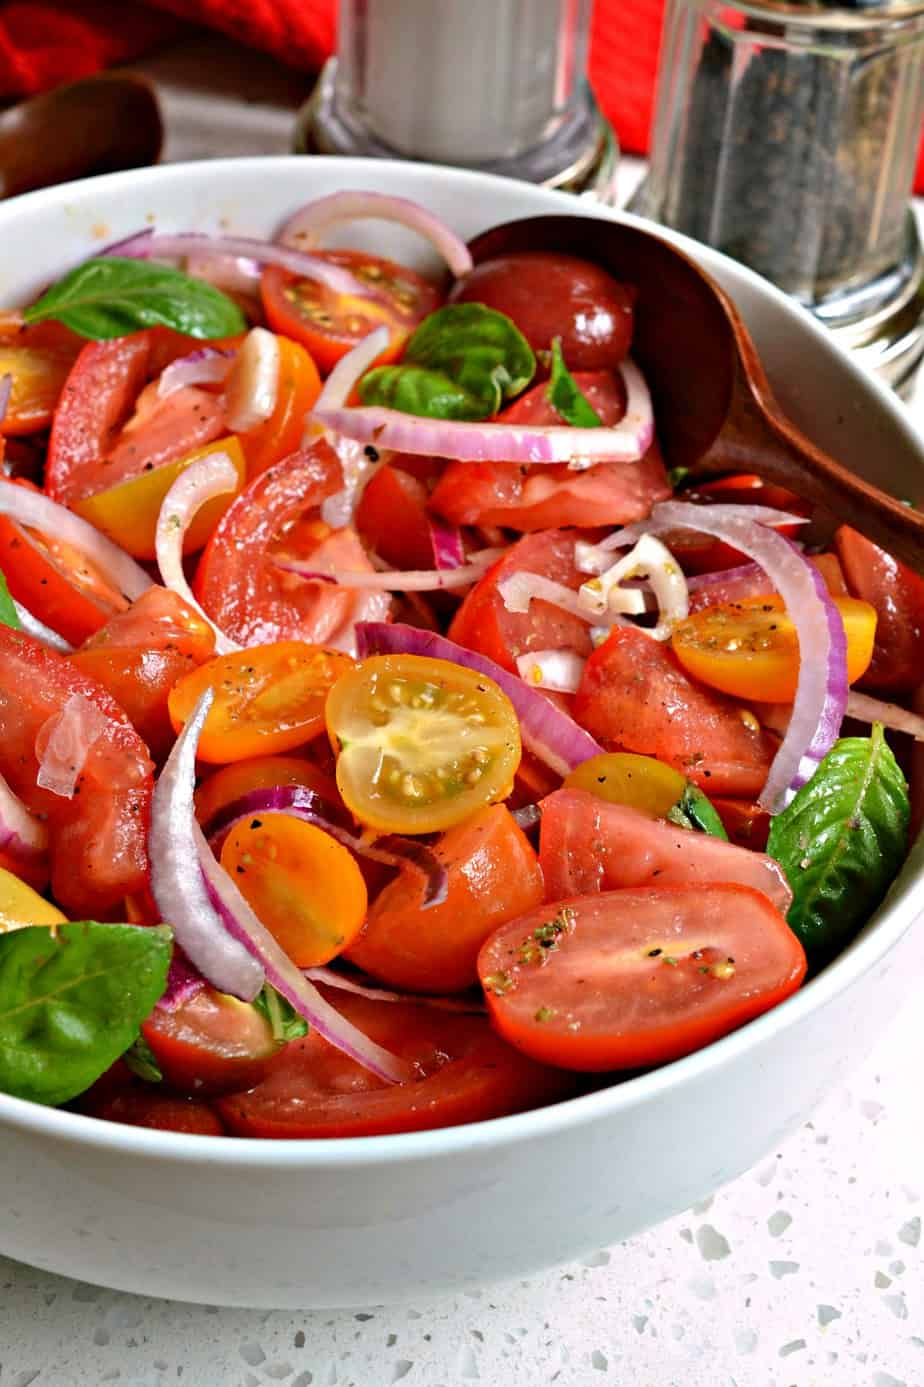 An easy yet flavorful tomato salad made with simple ingredients.